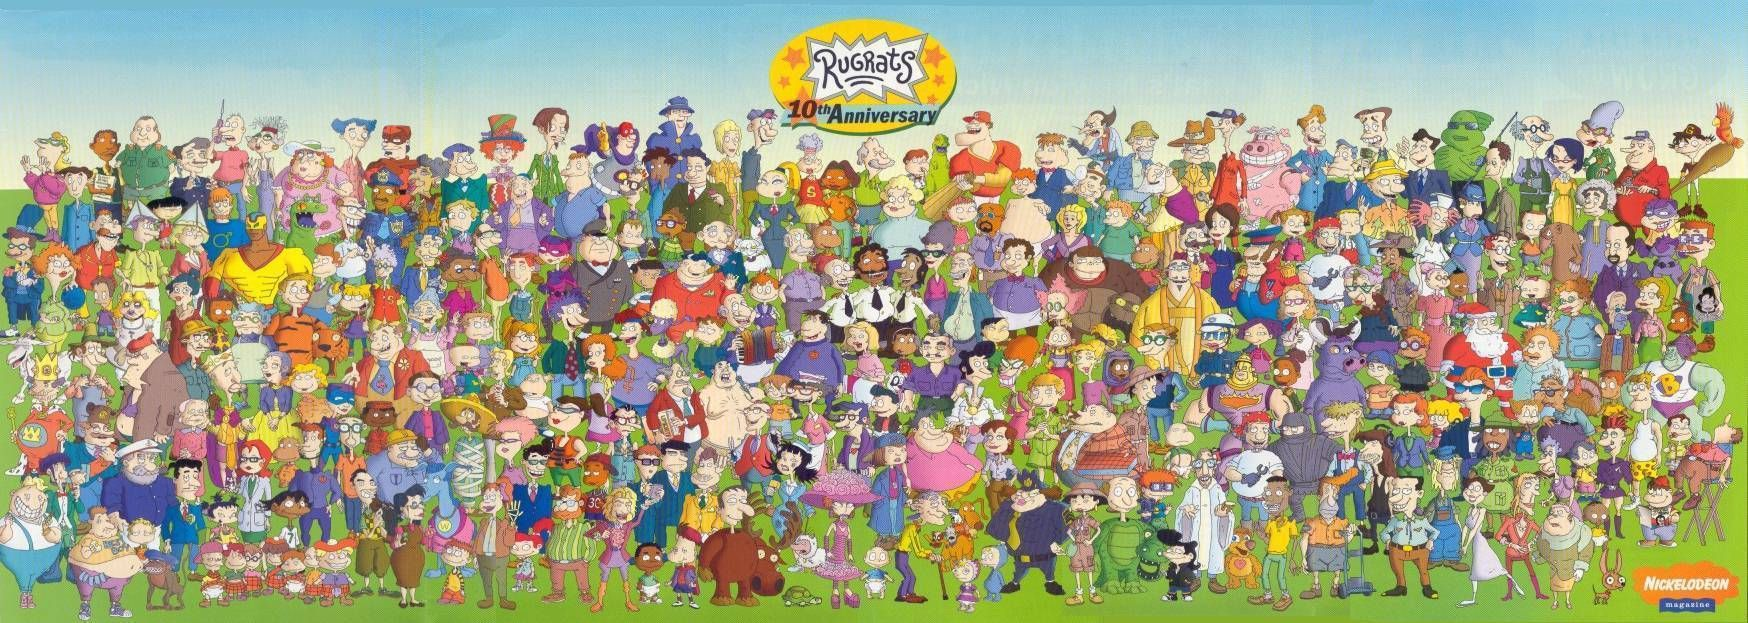 List of Rugrats characters Rugrats characters, Old